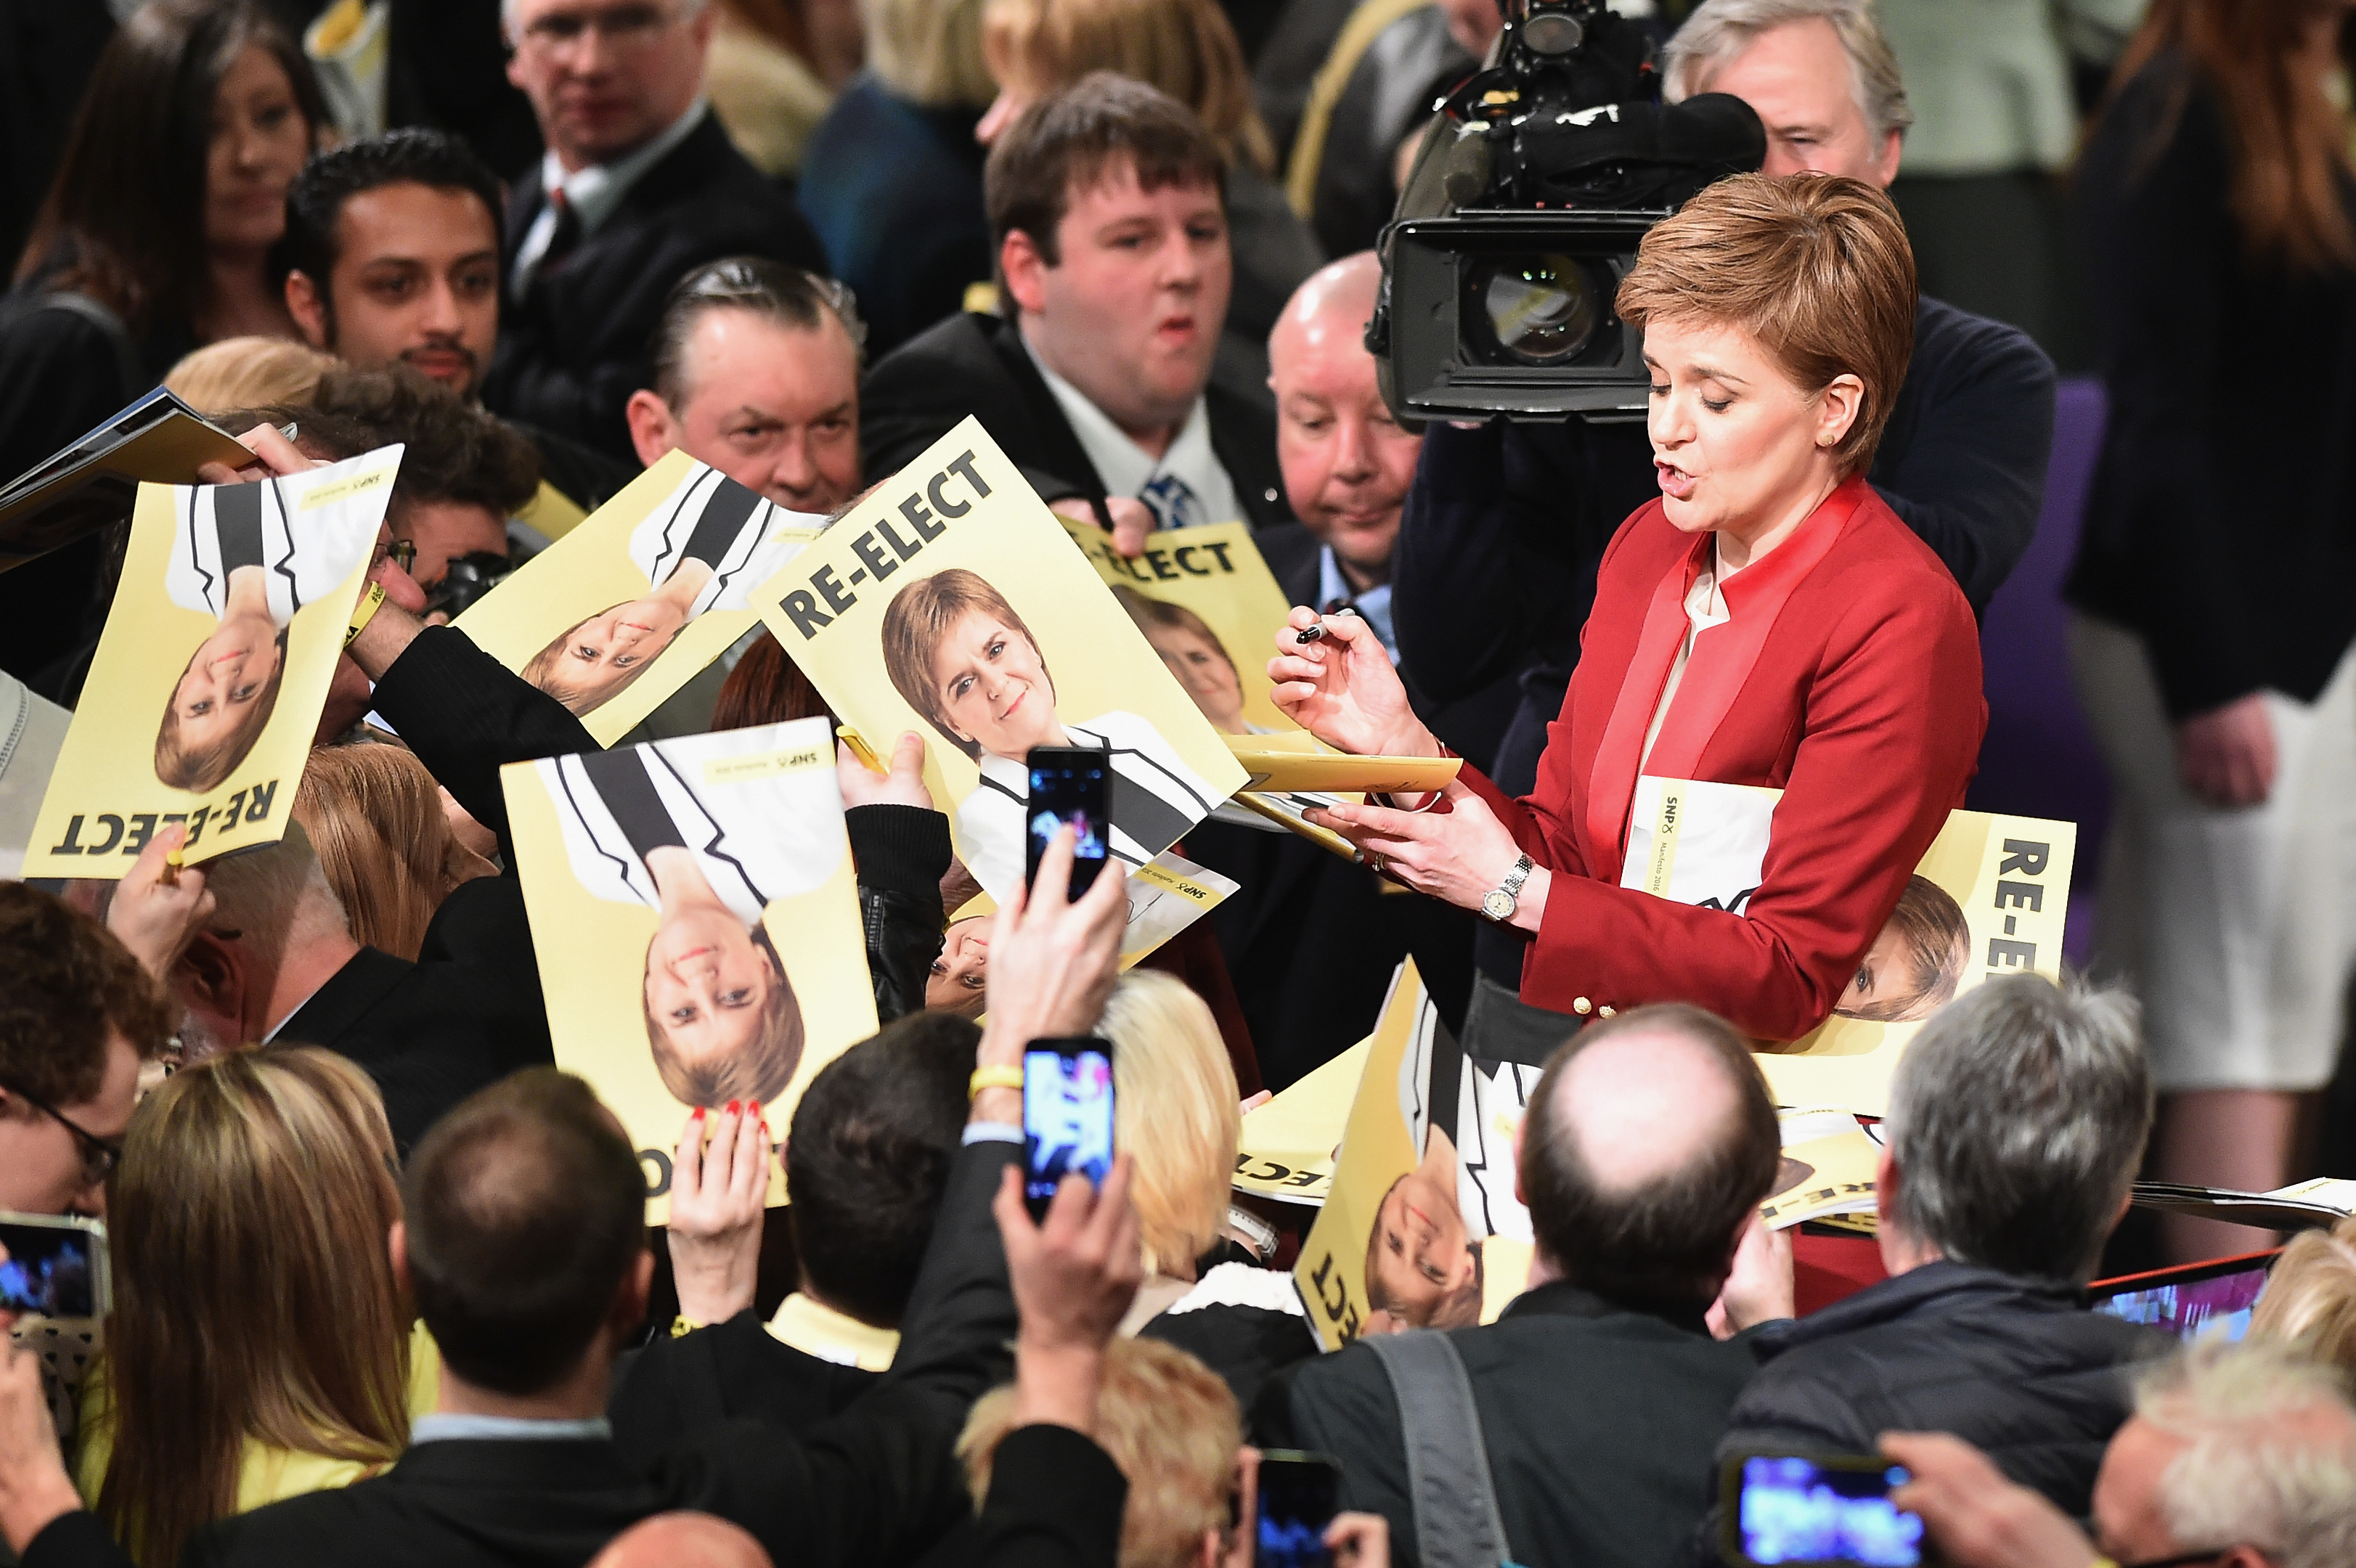 SNP leader Nicola Sturgeon signs copies of the party manifesto at the launch in Edinburgh (Jeff J Mitchell/Getty Images)